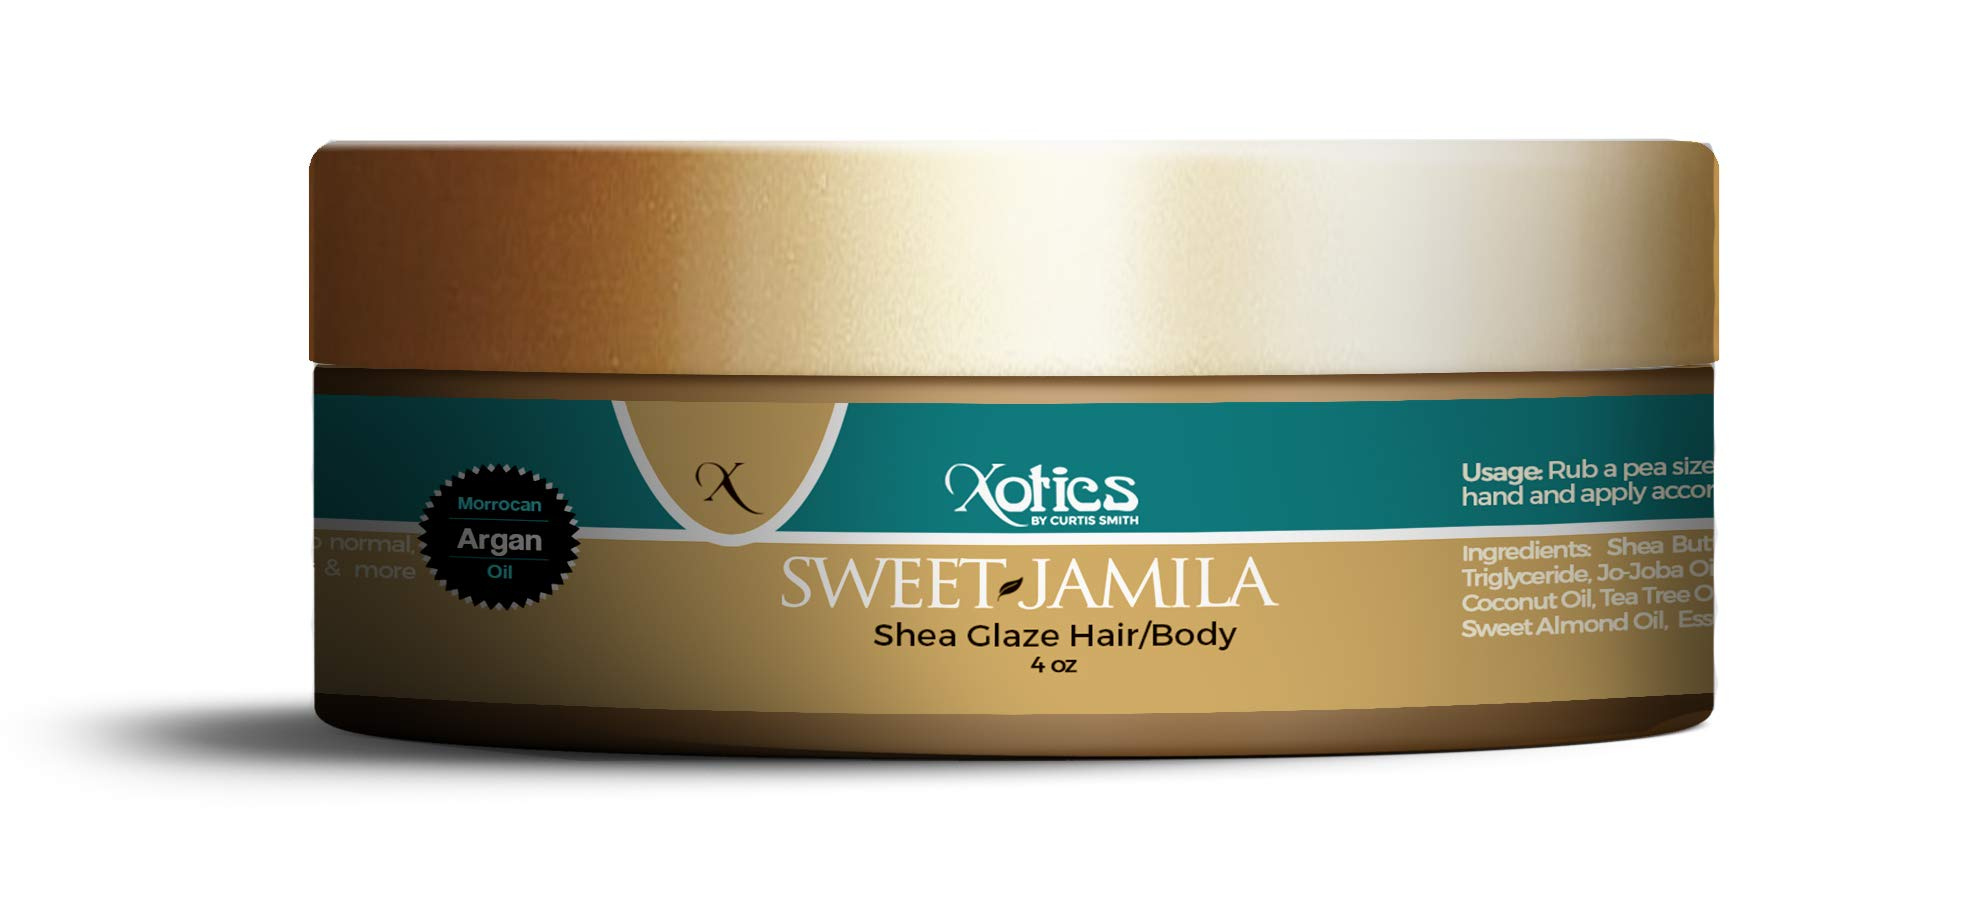 Xotics by Curtis Smith – Sweet Jamila Hair & Body Shea Glaze – 4 oz – Professionally Formulated Shea Butter & Essential Oil Fusion – Nourish, Protect & Support Healthy Hair and Skin